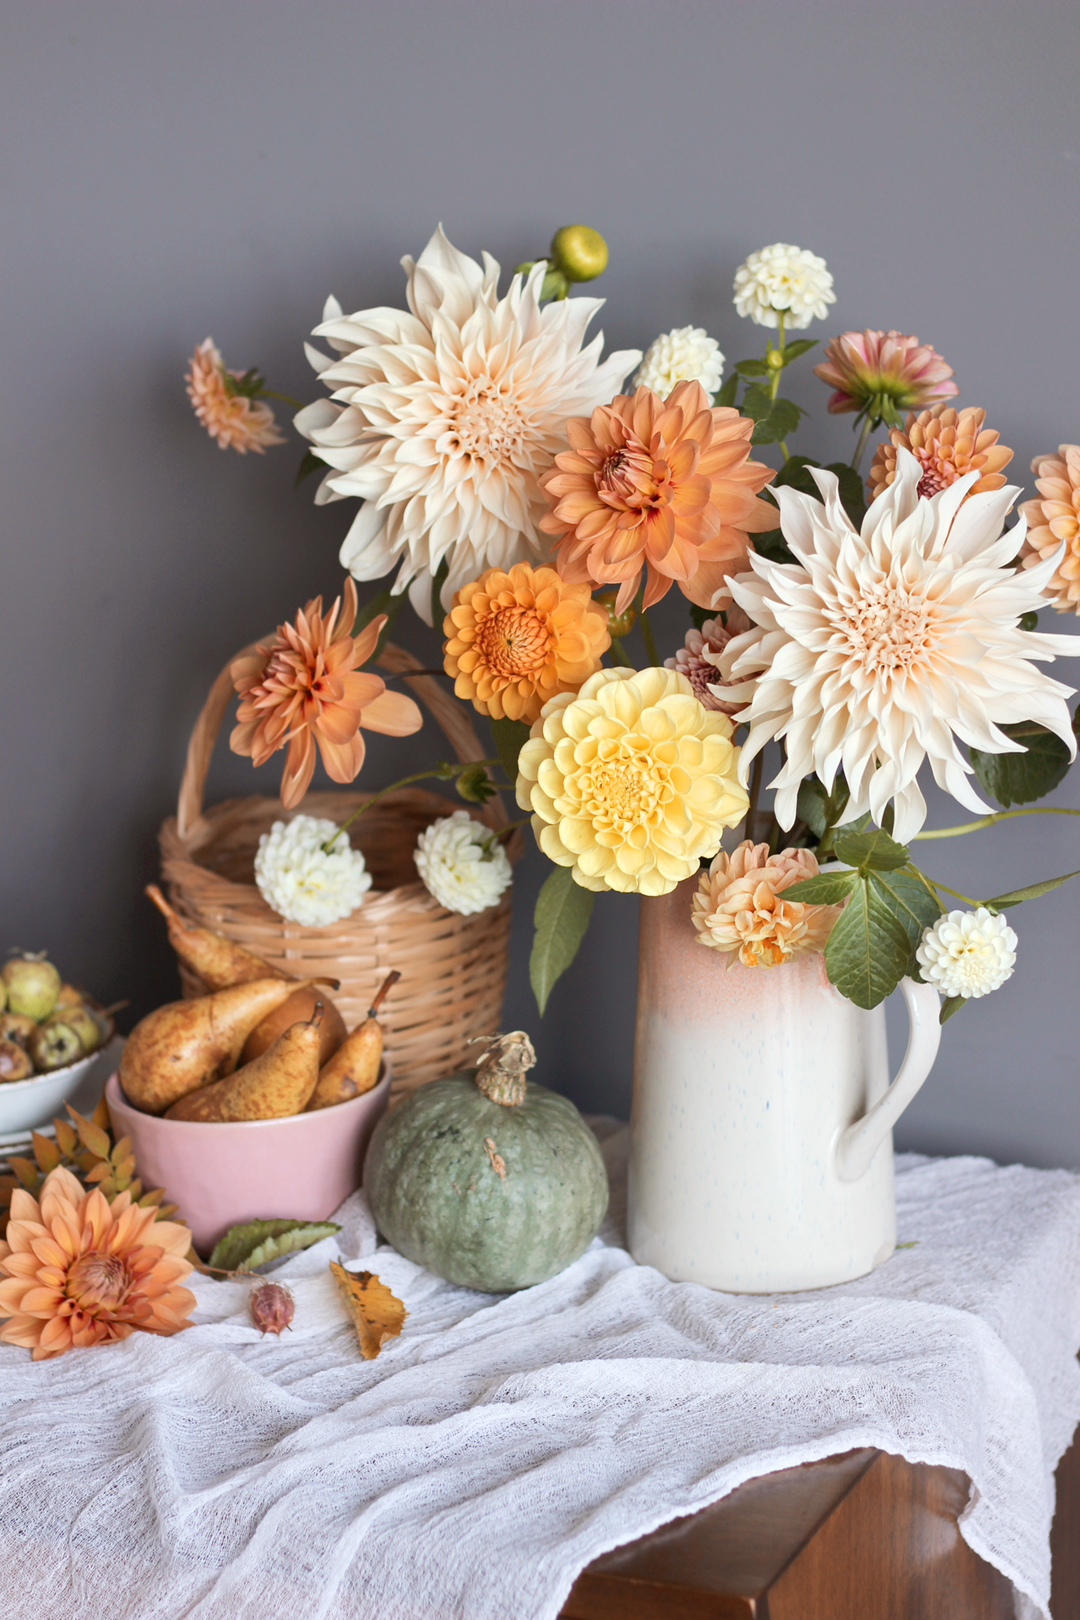 cafe-au-lait-dahlia-autuman-floral-arrangement-nancy-straughan-stylist.jpg